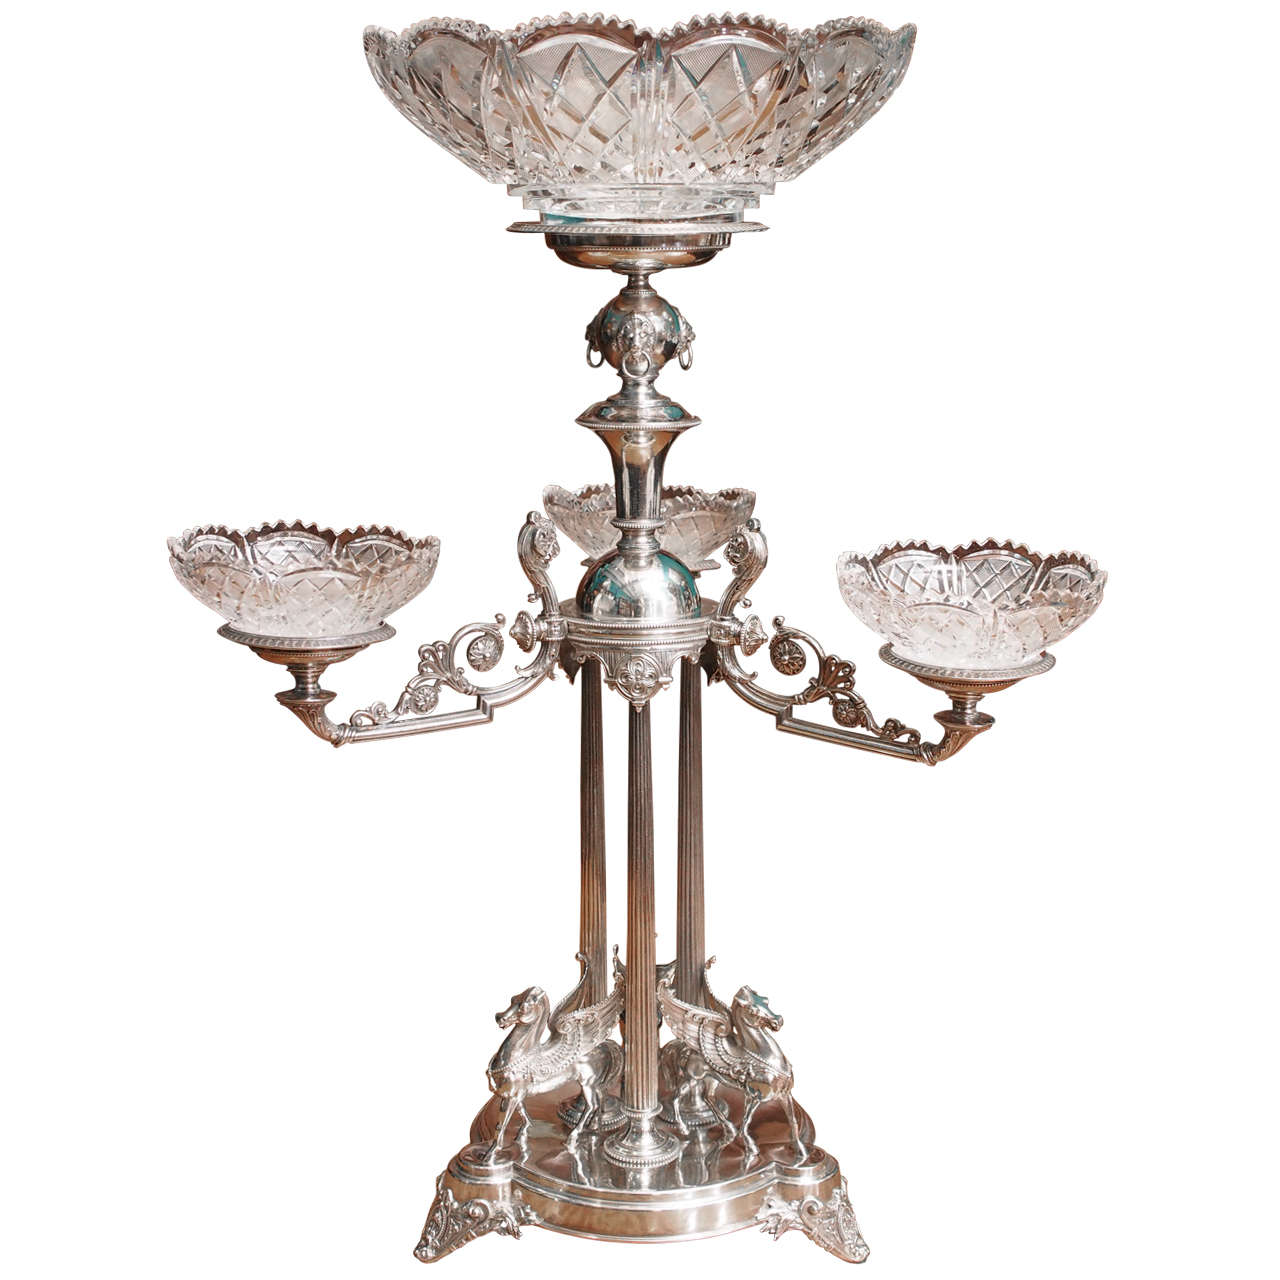 Chic Epergne | Charming Glass Epergne Inspirations